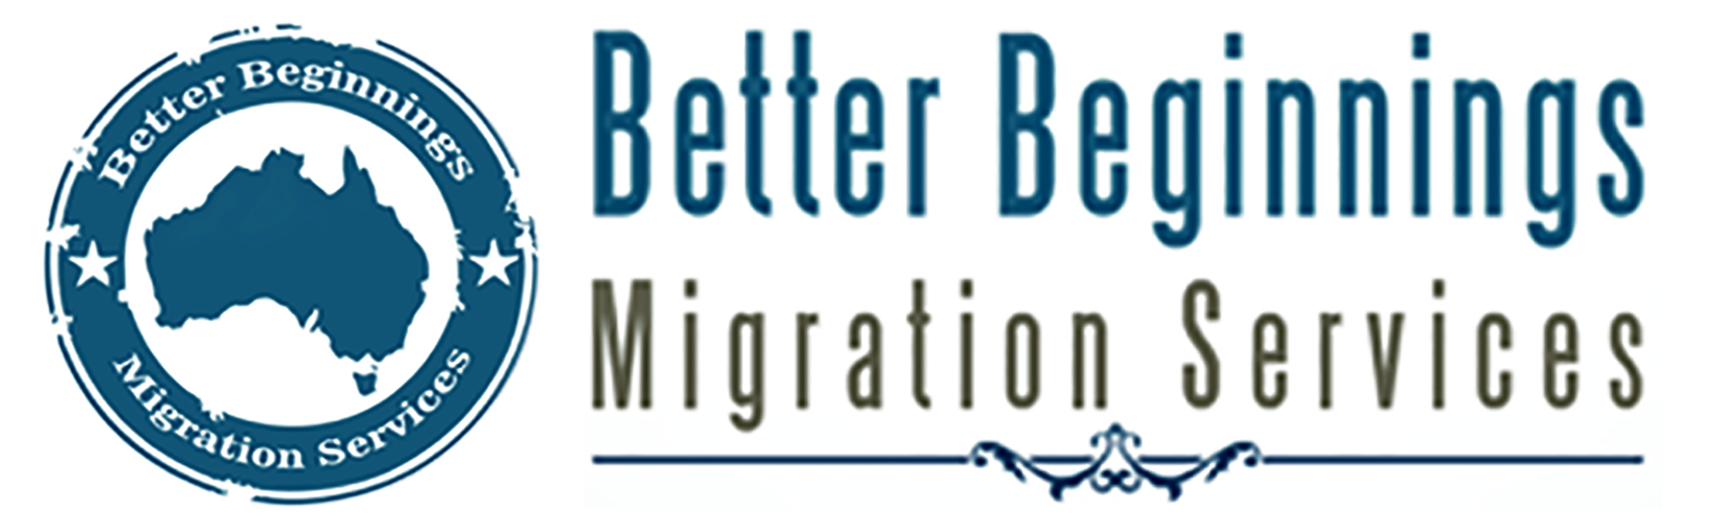 Better Beginnings Migration Services